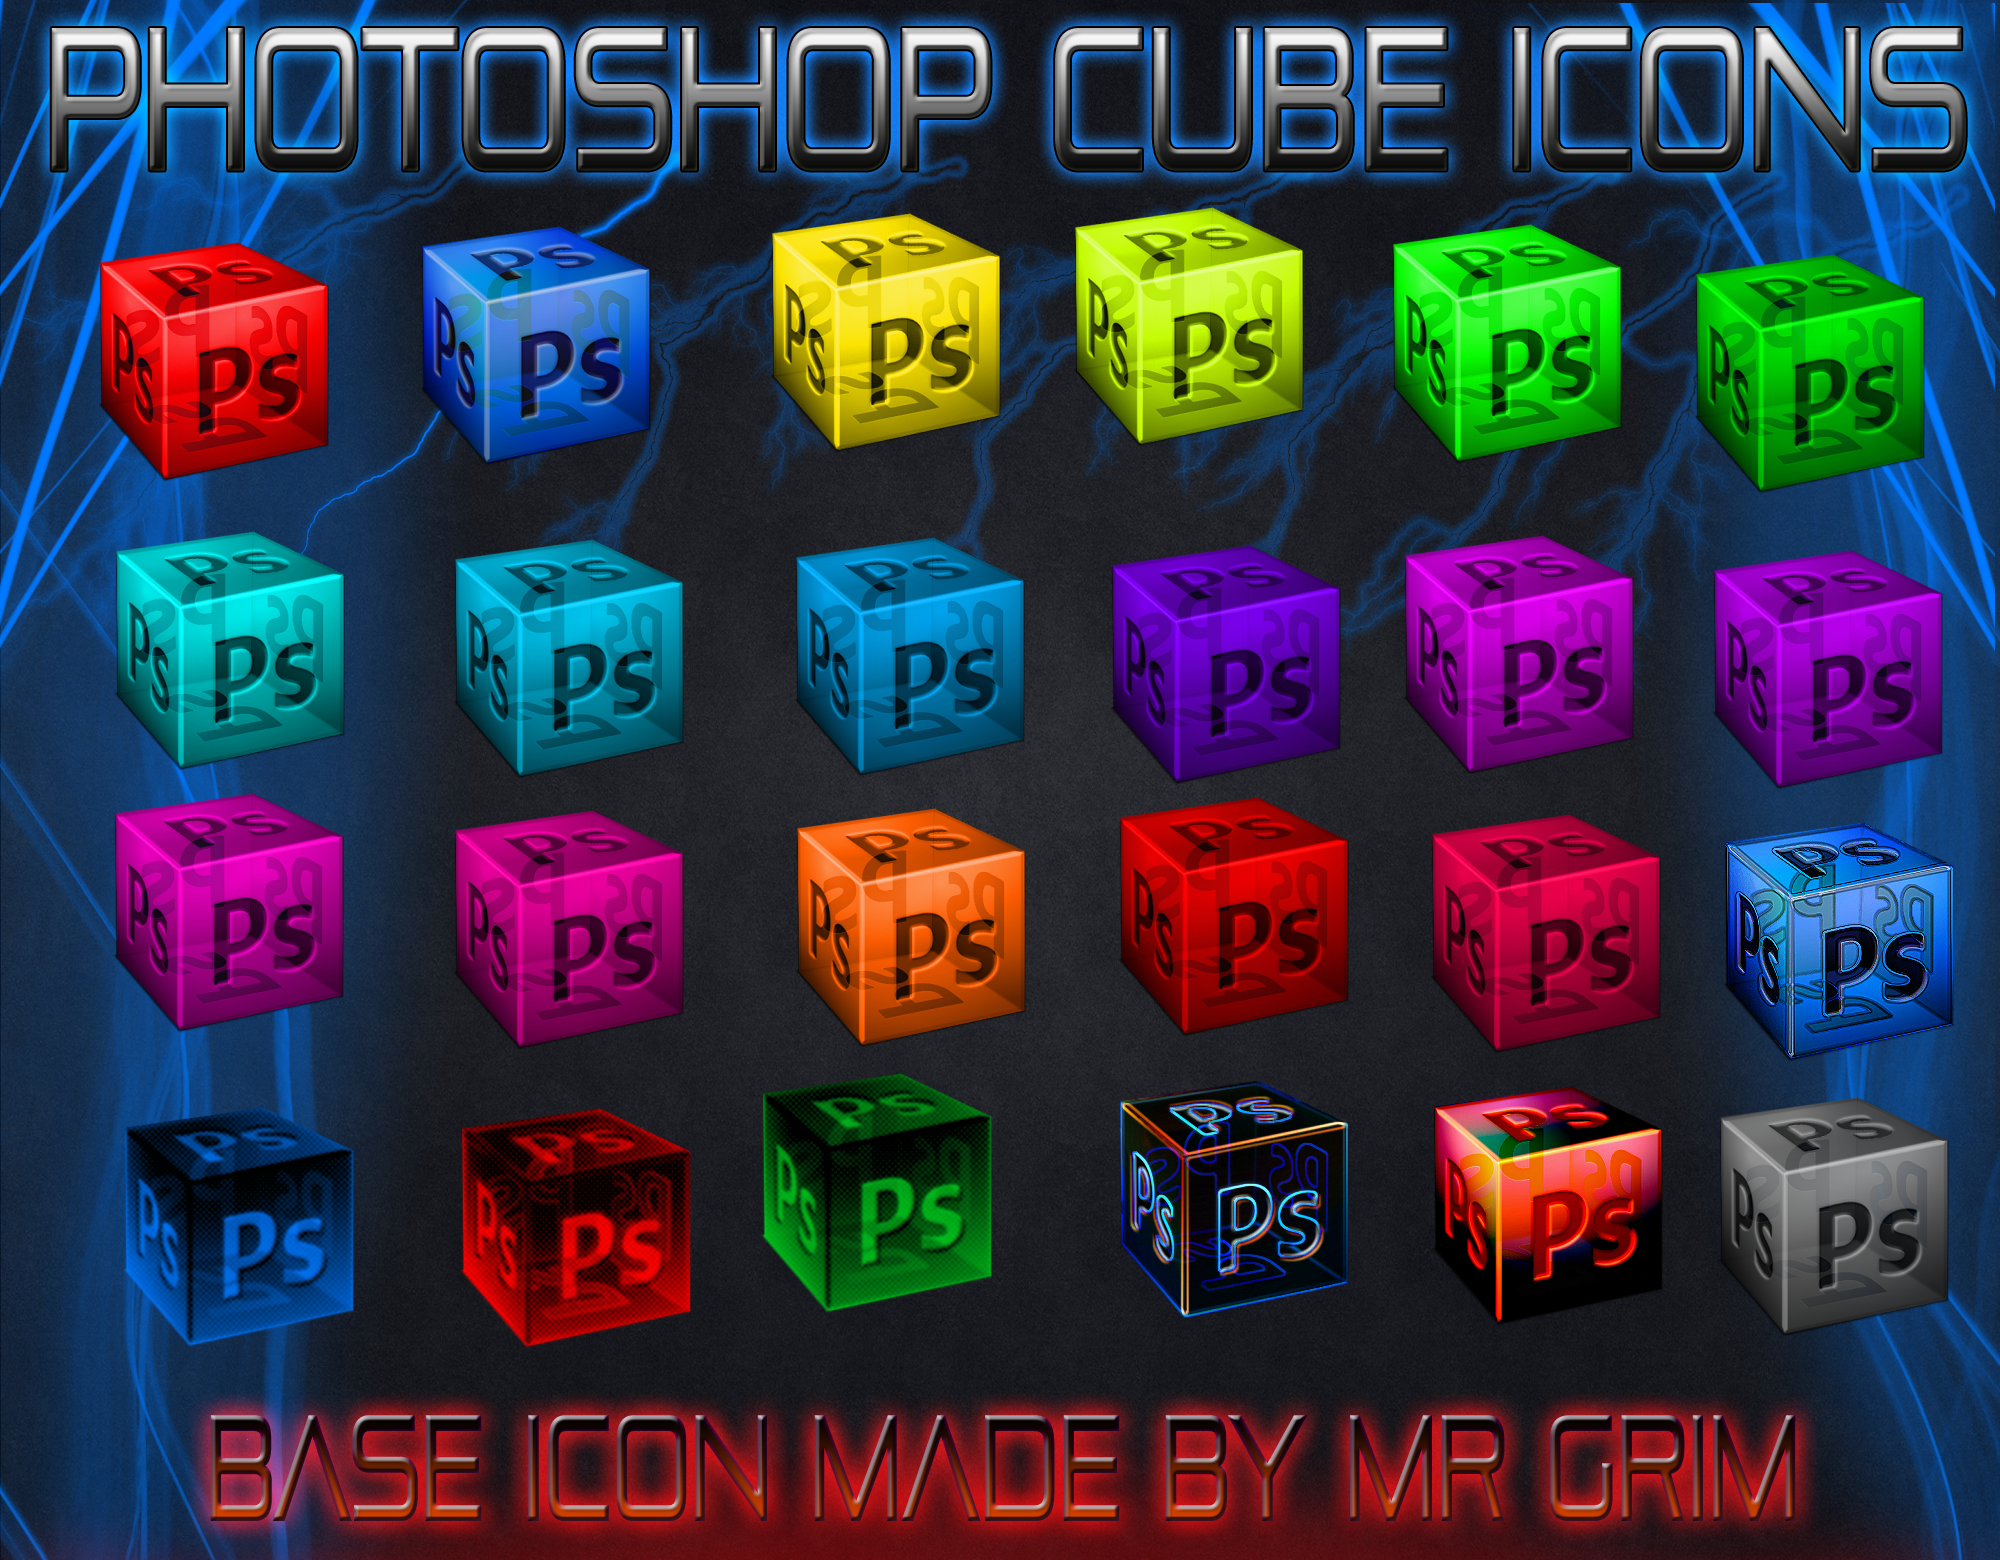 Photoshop Cube Dock Icons by FalconJus